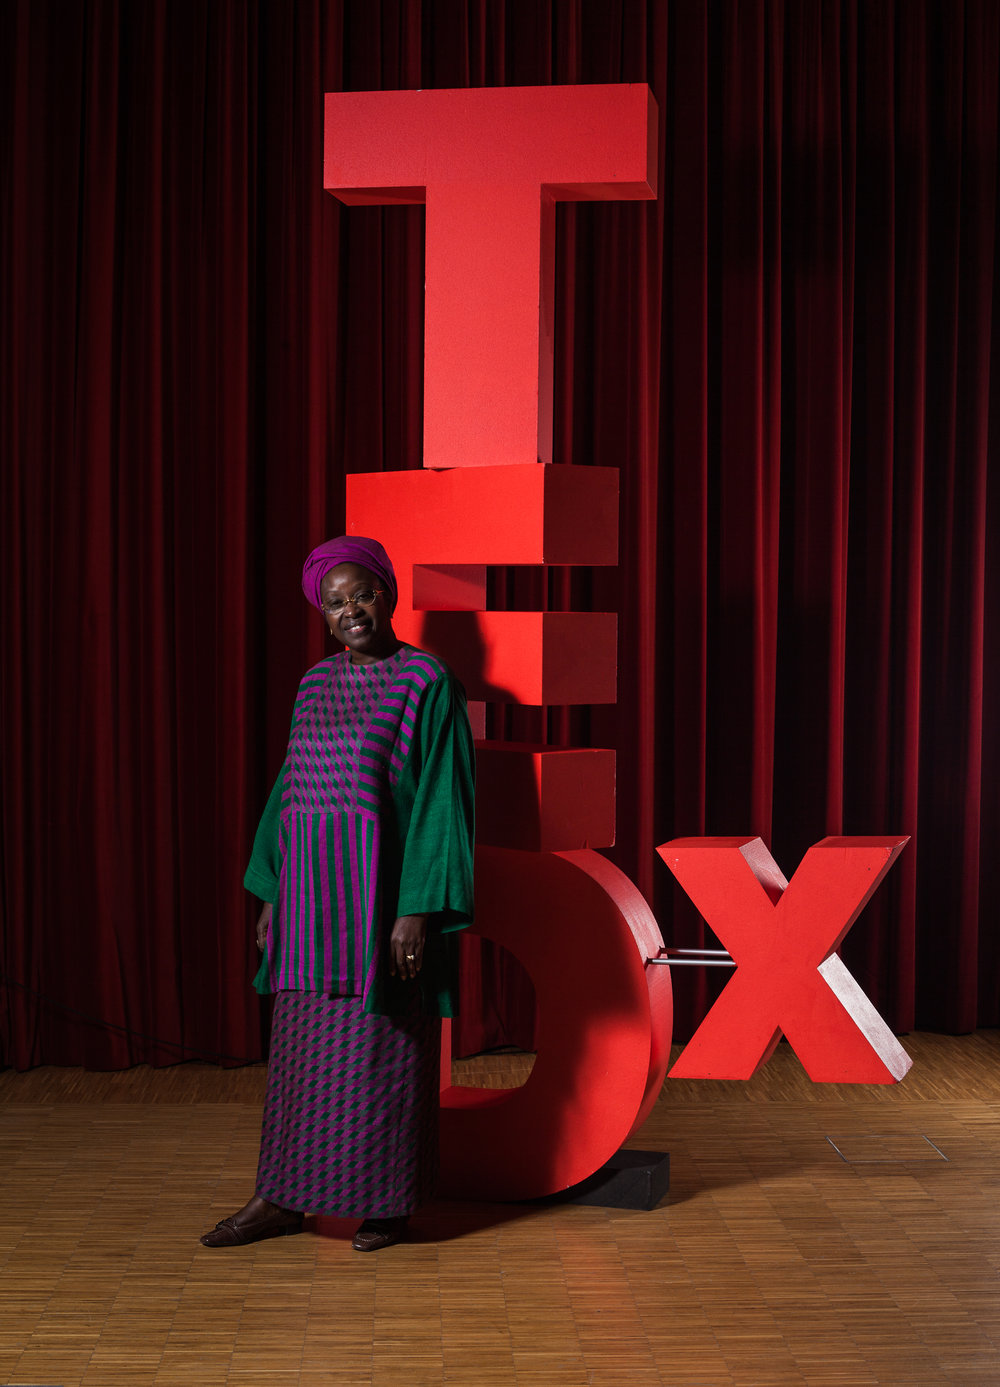 TEDxMartigny is one of the best initiative to share and discover new ideas. Today, Martigny is the center of the world.  - Bineta Diop -